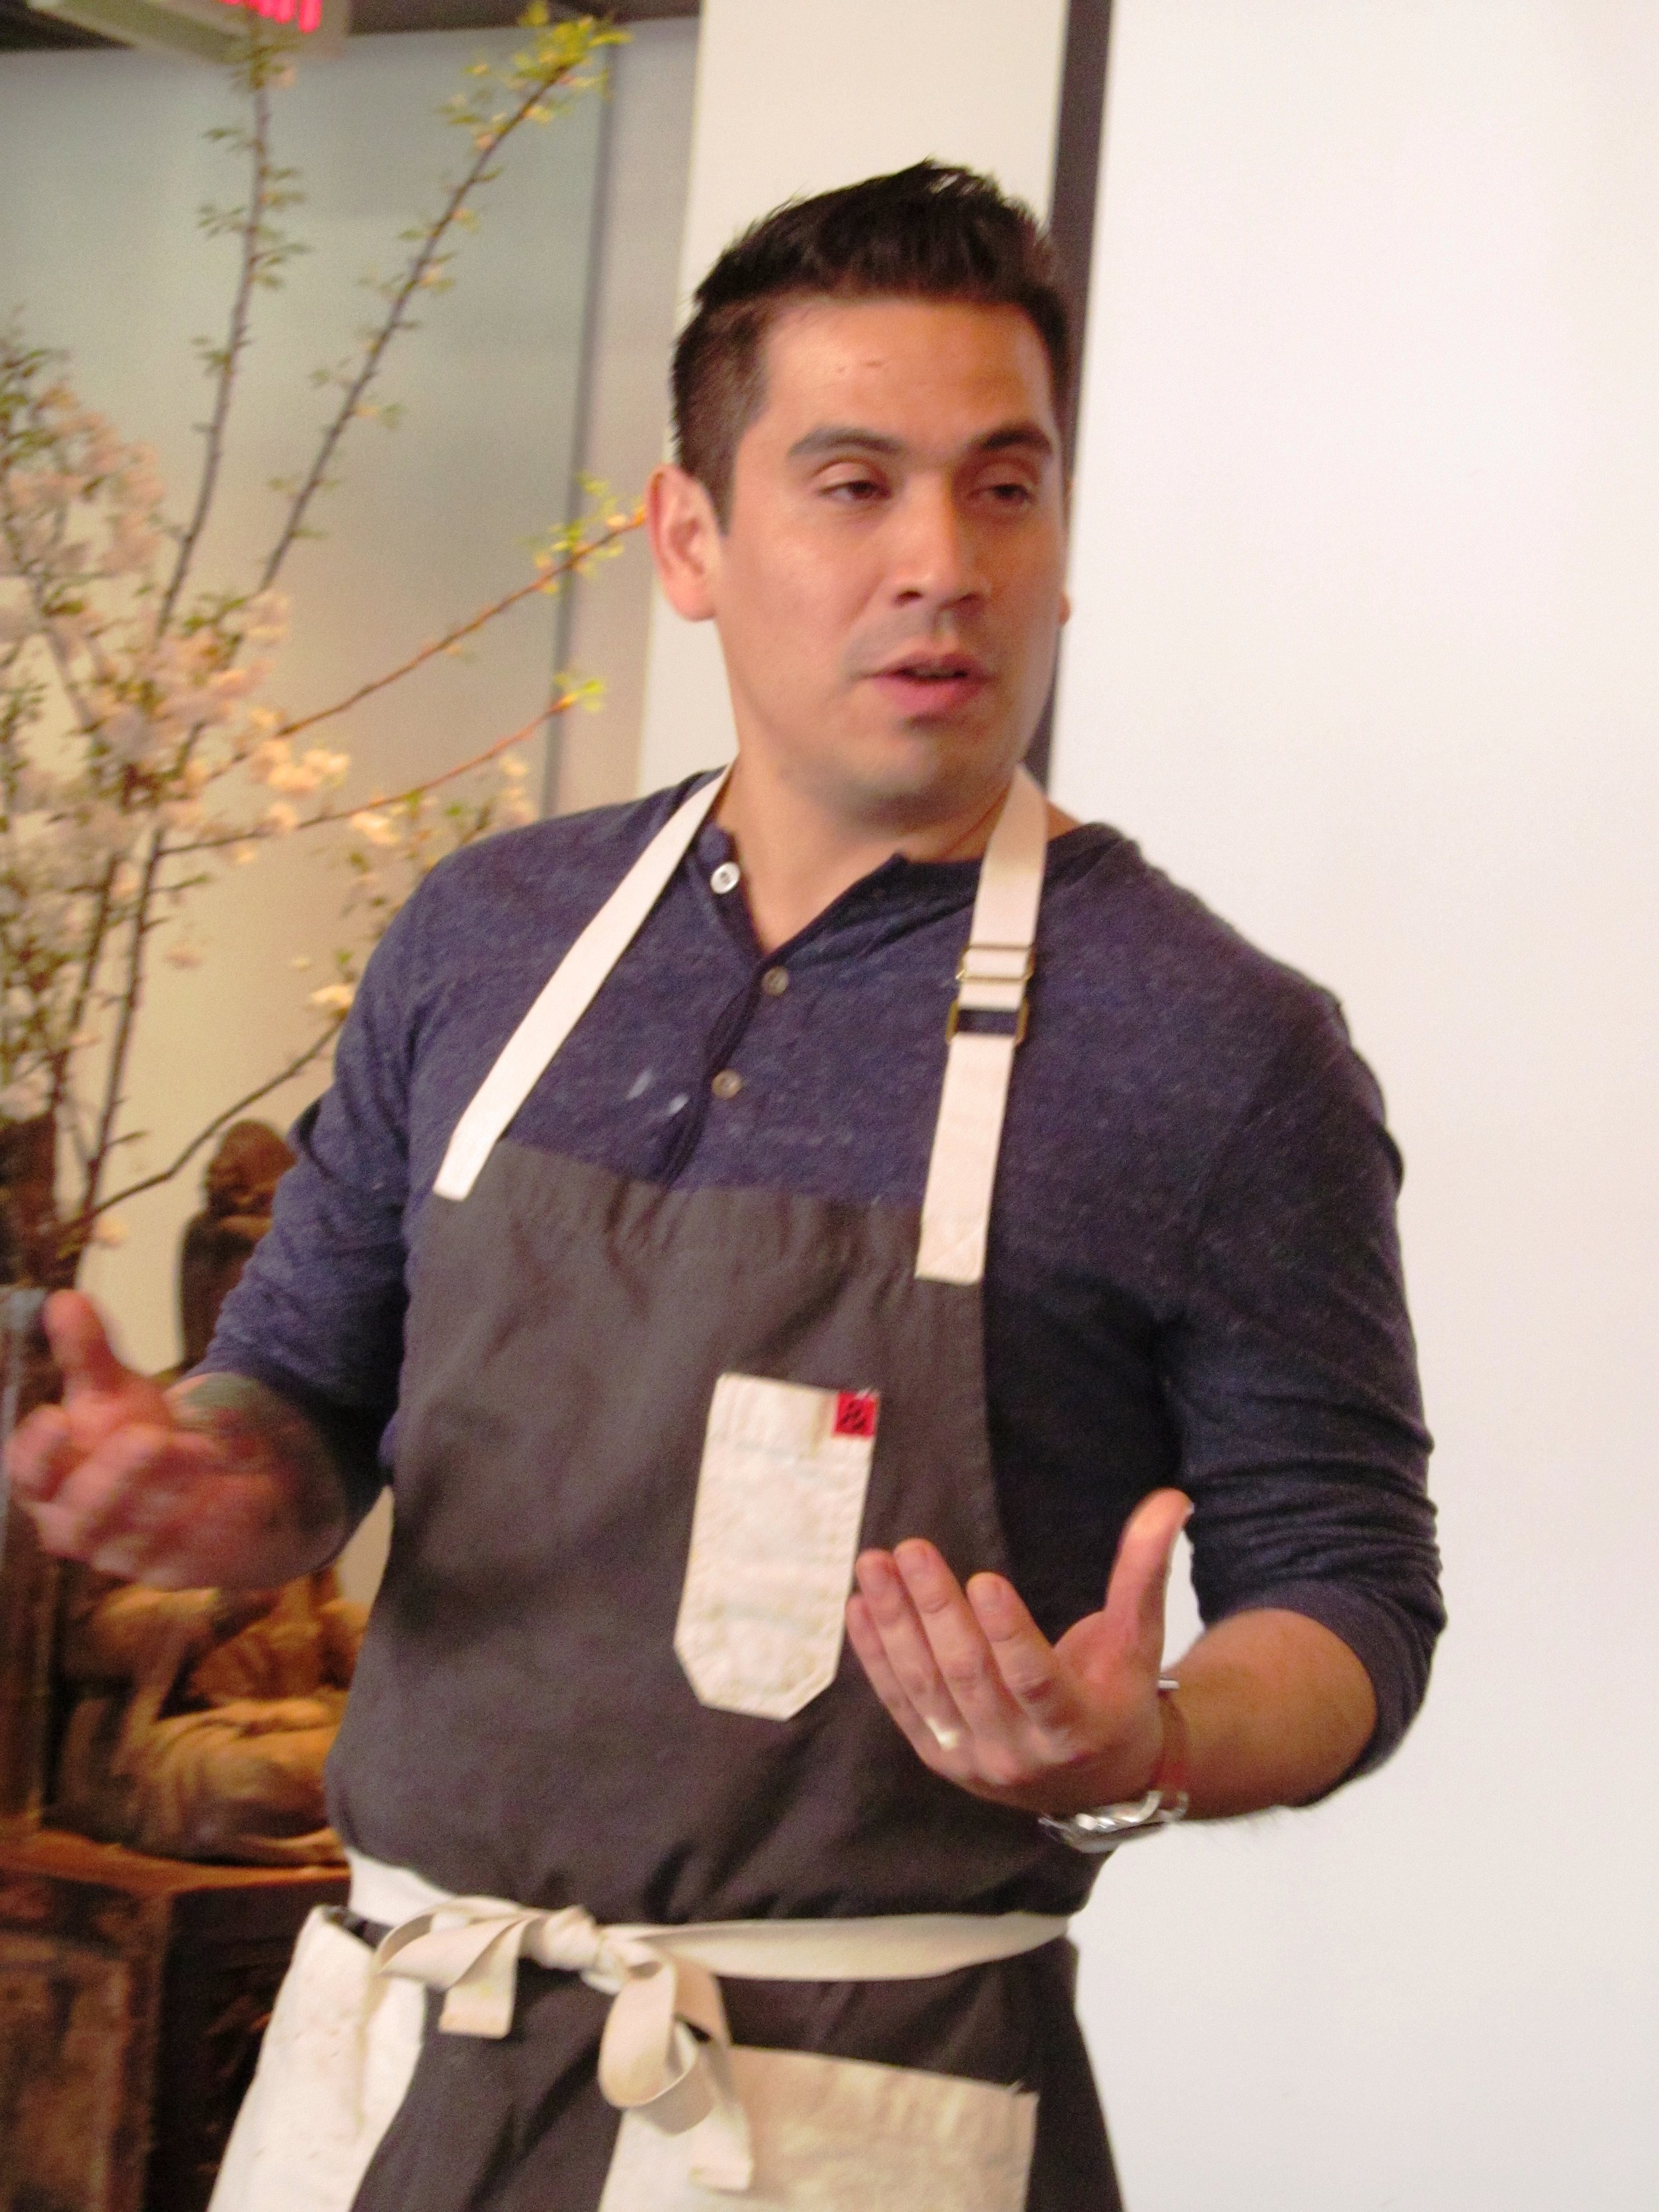 Peruvian-born and Pan-Asian trained chef at Saucebox, Alex Diestra, explaining his culinary creations to an appreciative audience. Courtesy of Wine Yakima Valley.